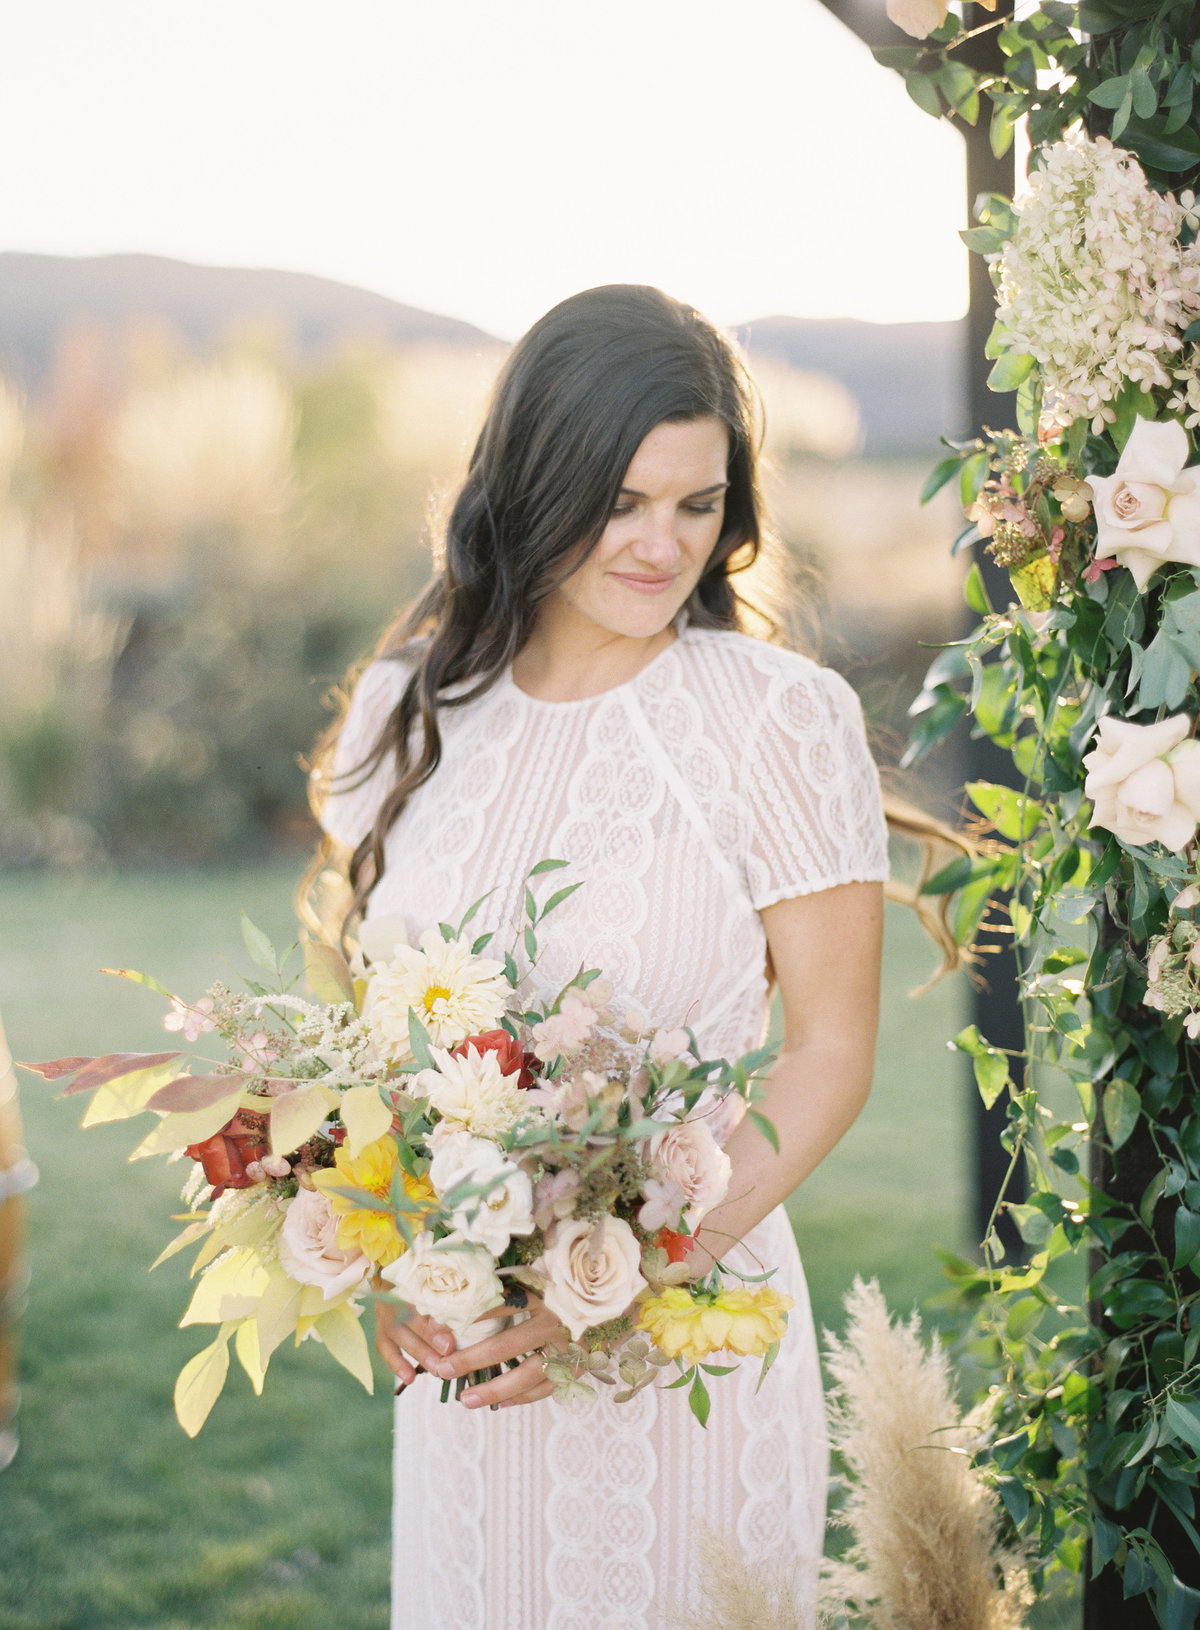 California Wedding Photographer 003334-R1-008